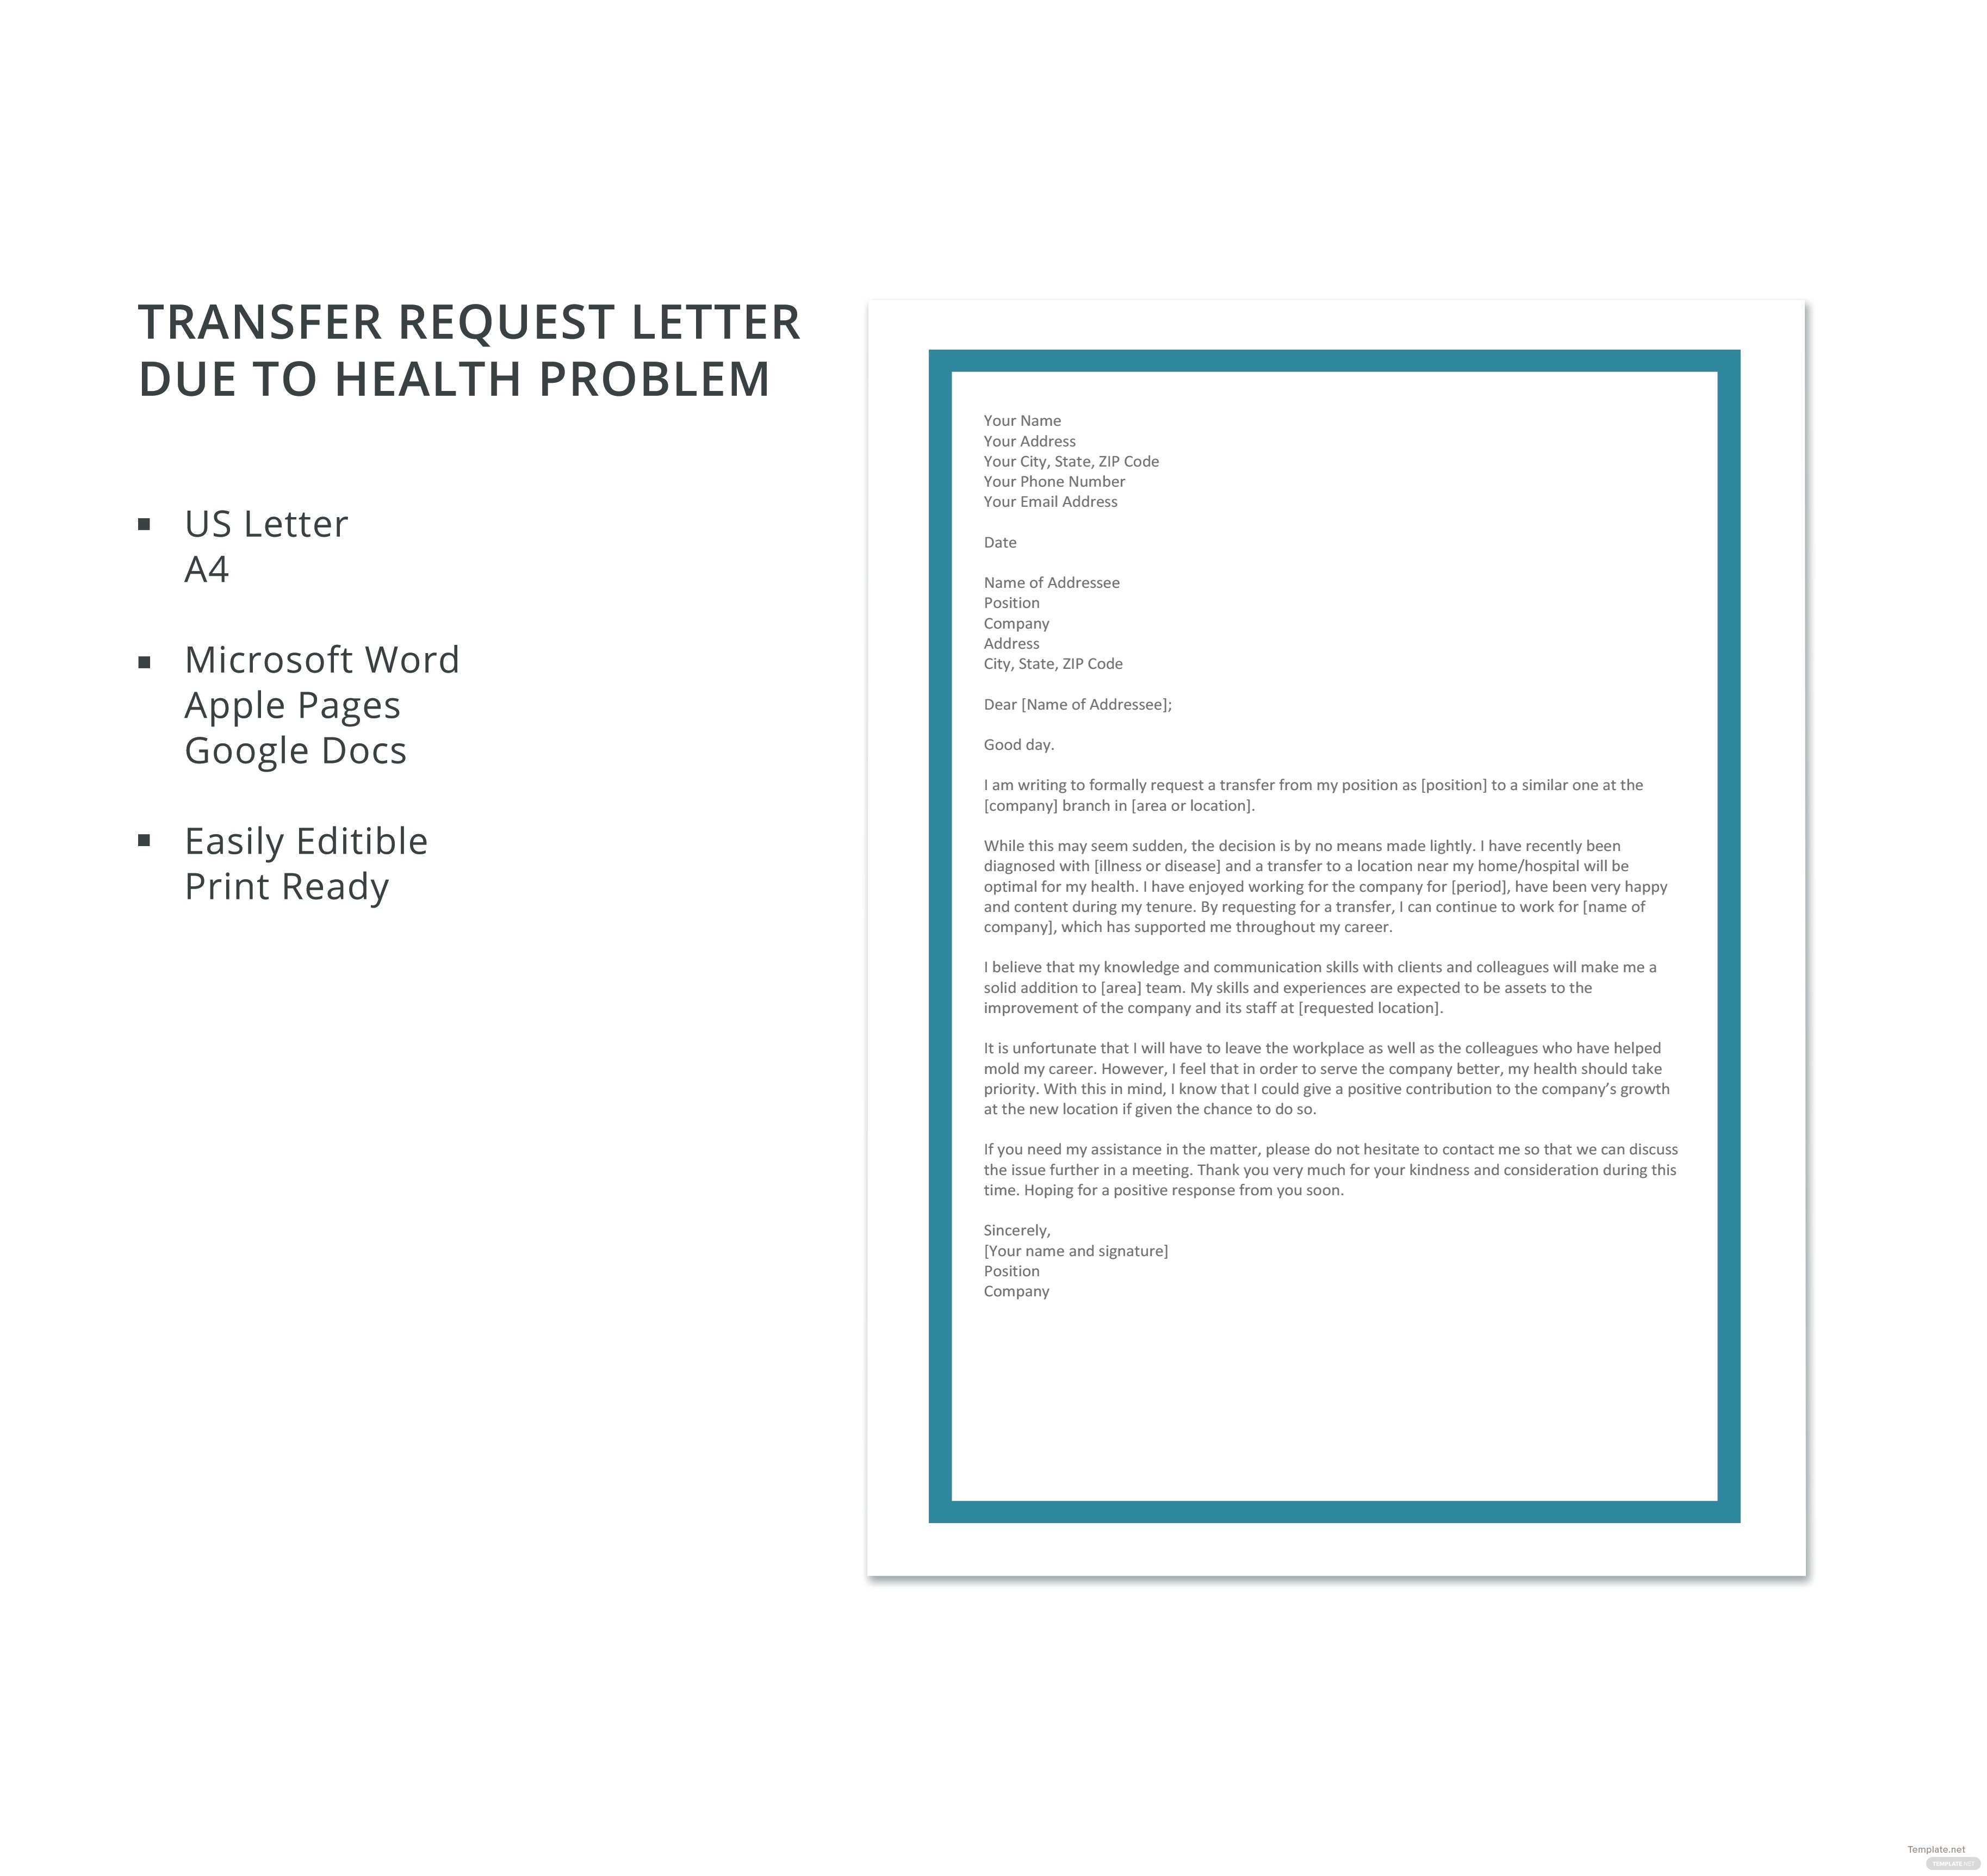 Transfer Request Letter Due To Health Problem Template In Microsoft